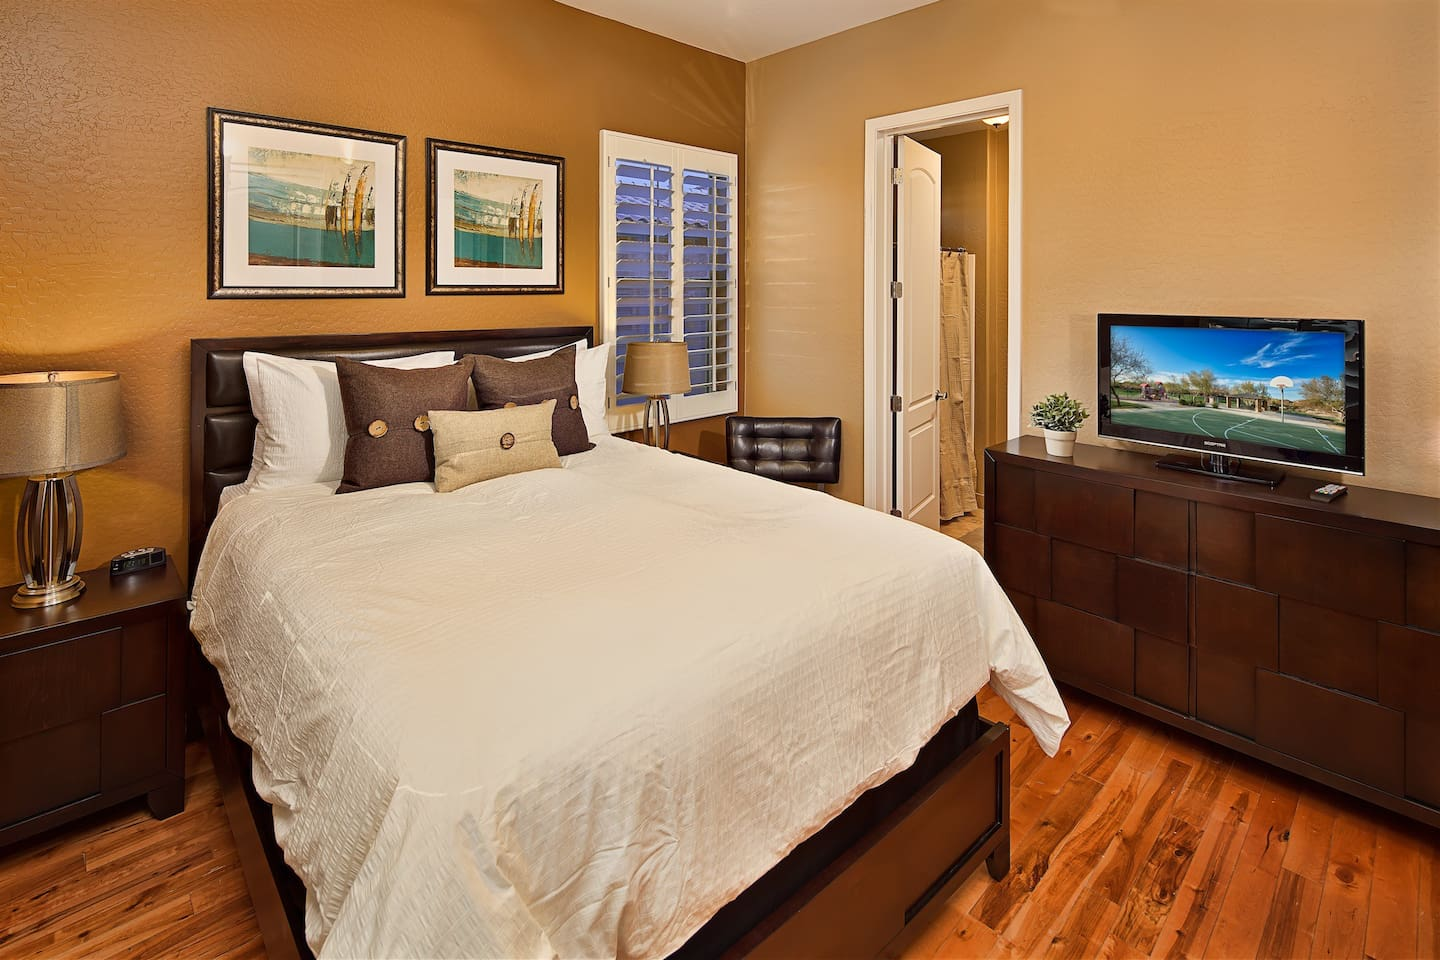 Master Suite 2: Private Bathroom, TV, Downstairs